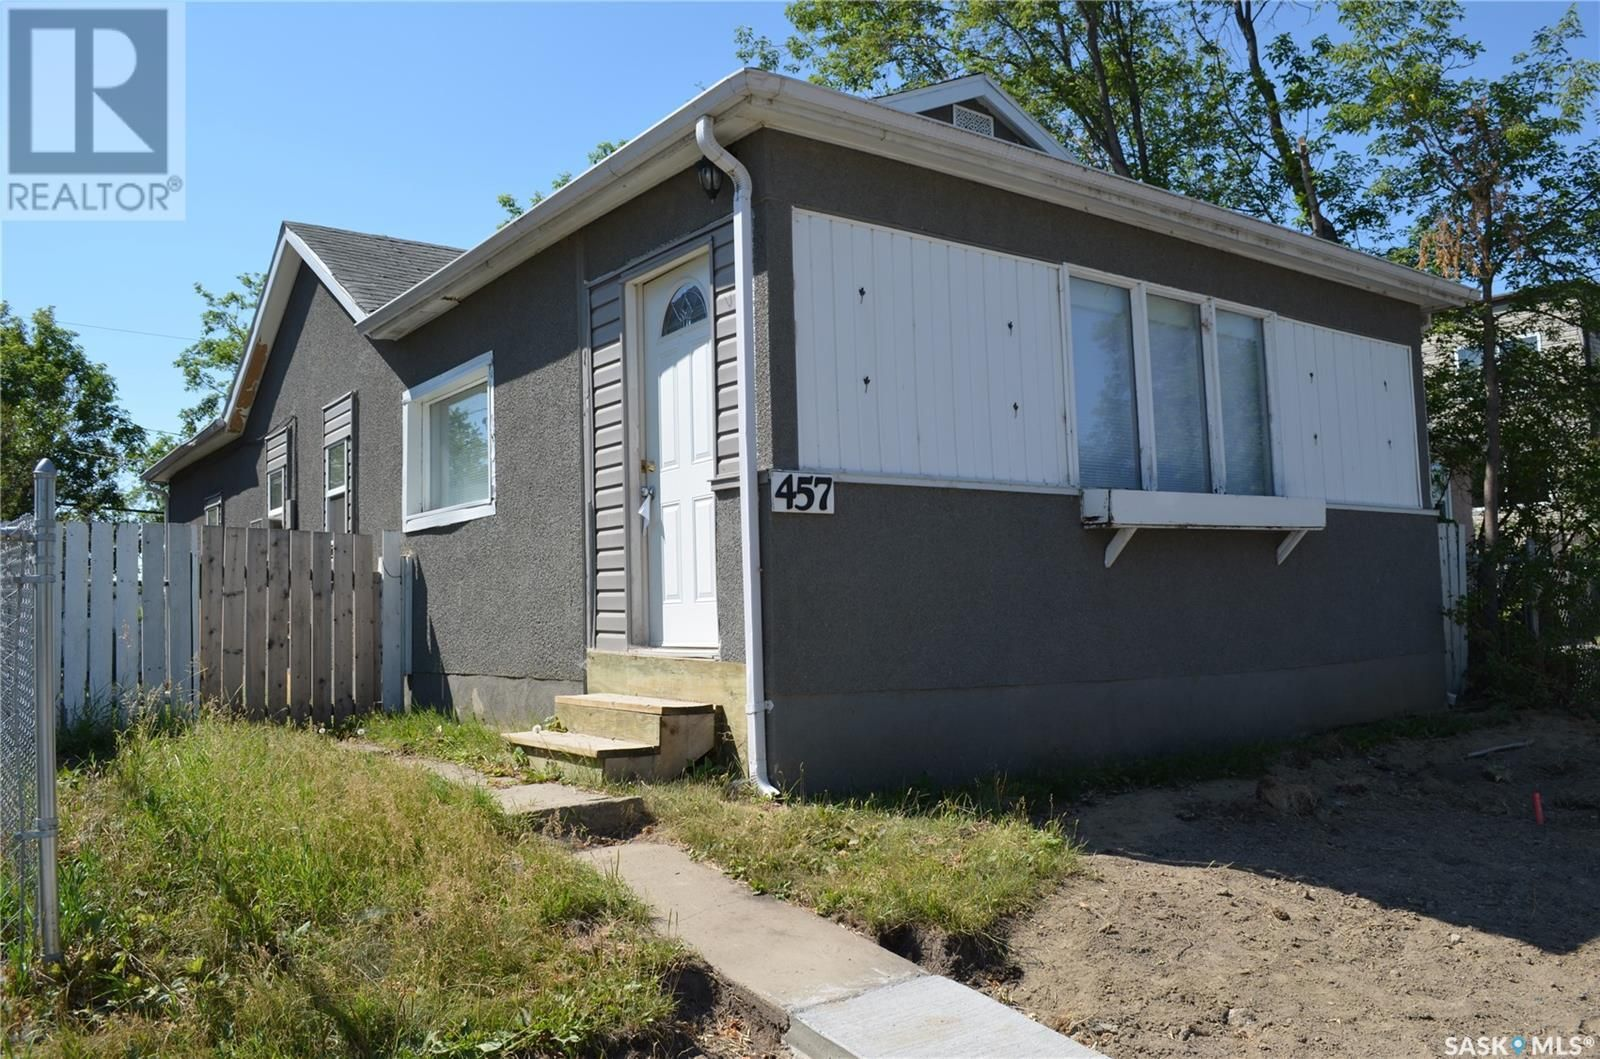 Main Photo: 457 12th ST E in Prince Albert: House for sale : MLS®# SK865490